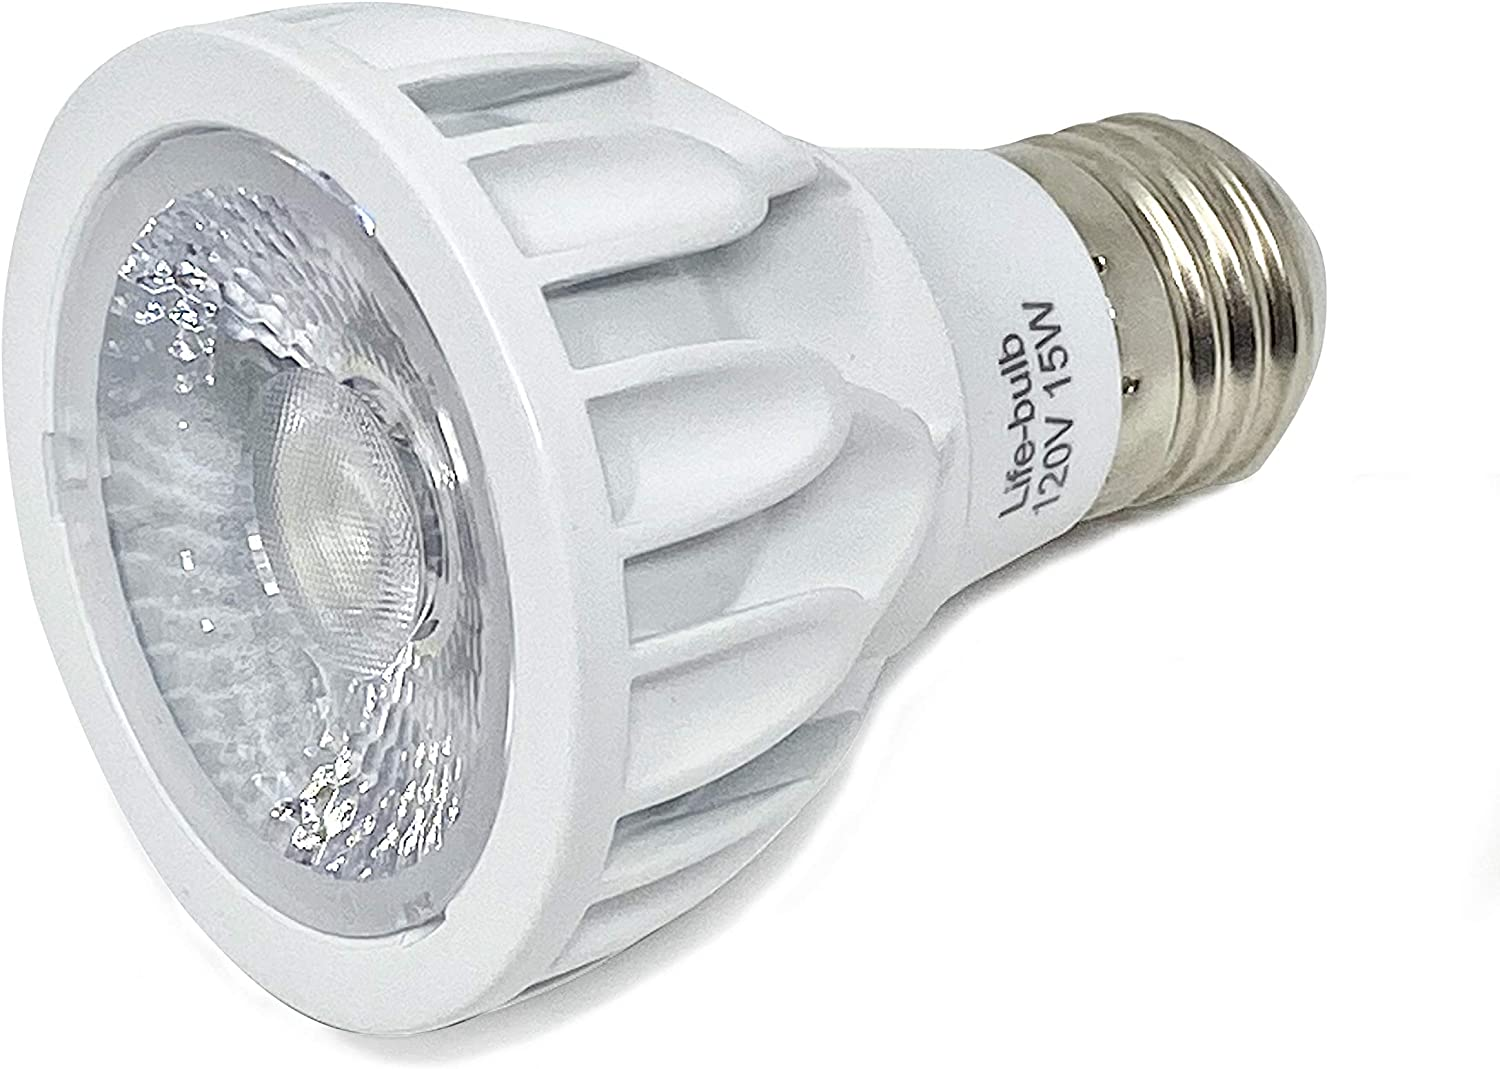 Life-Bulb LED Spa Max 63% OFF Light Bulb for Manufacturer regenerated product White 120V in ground 15W